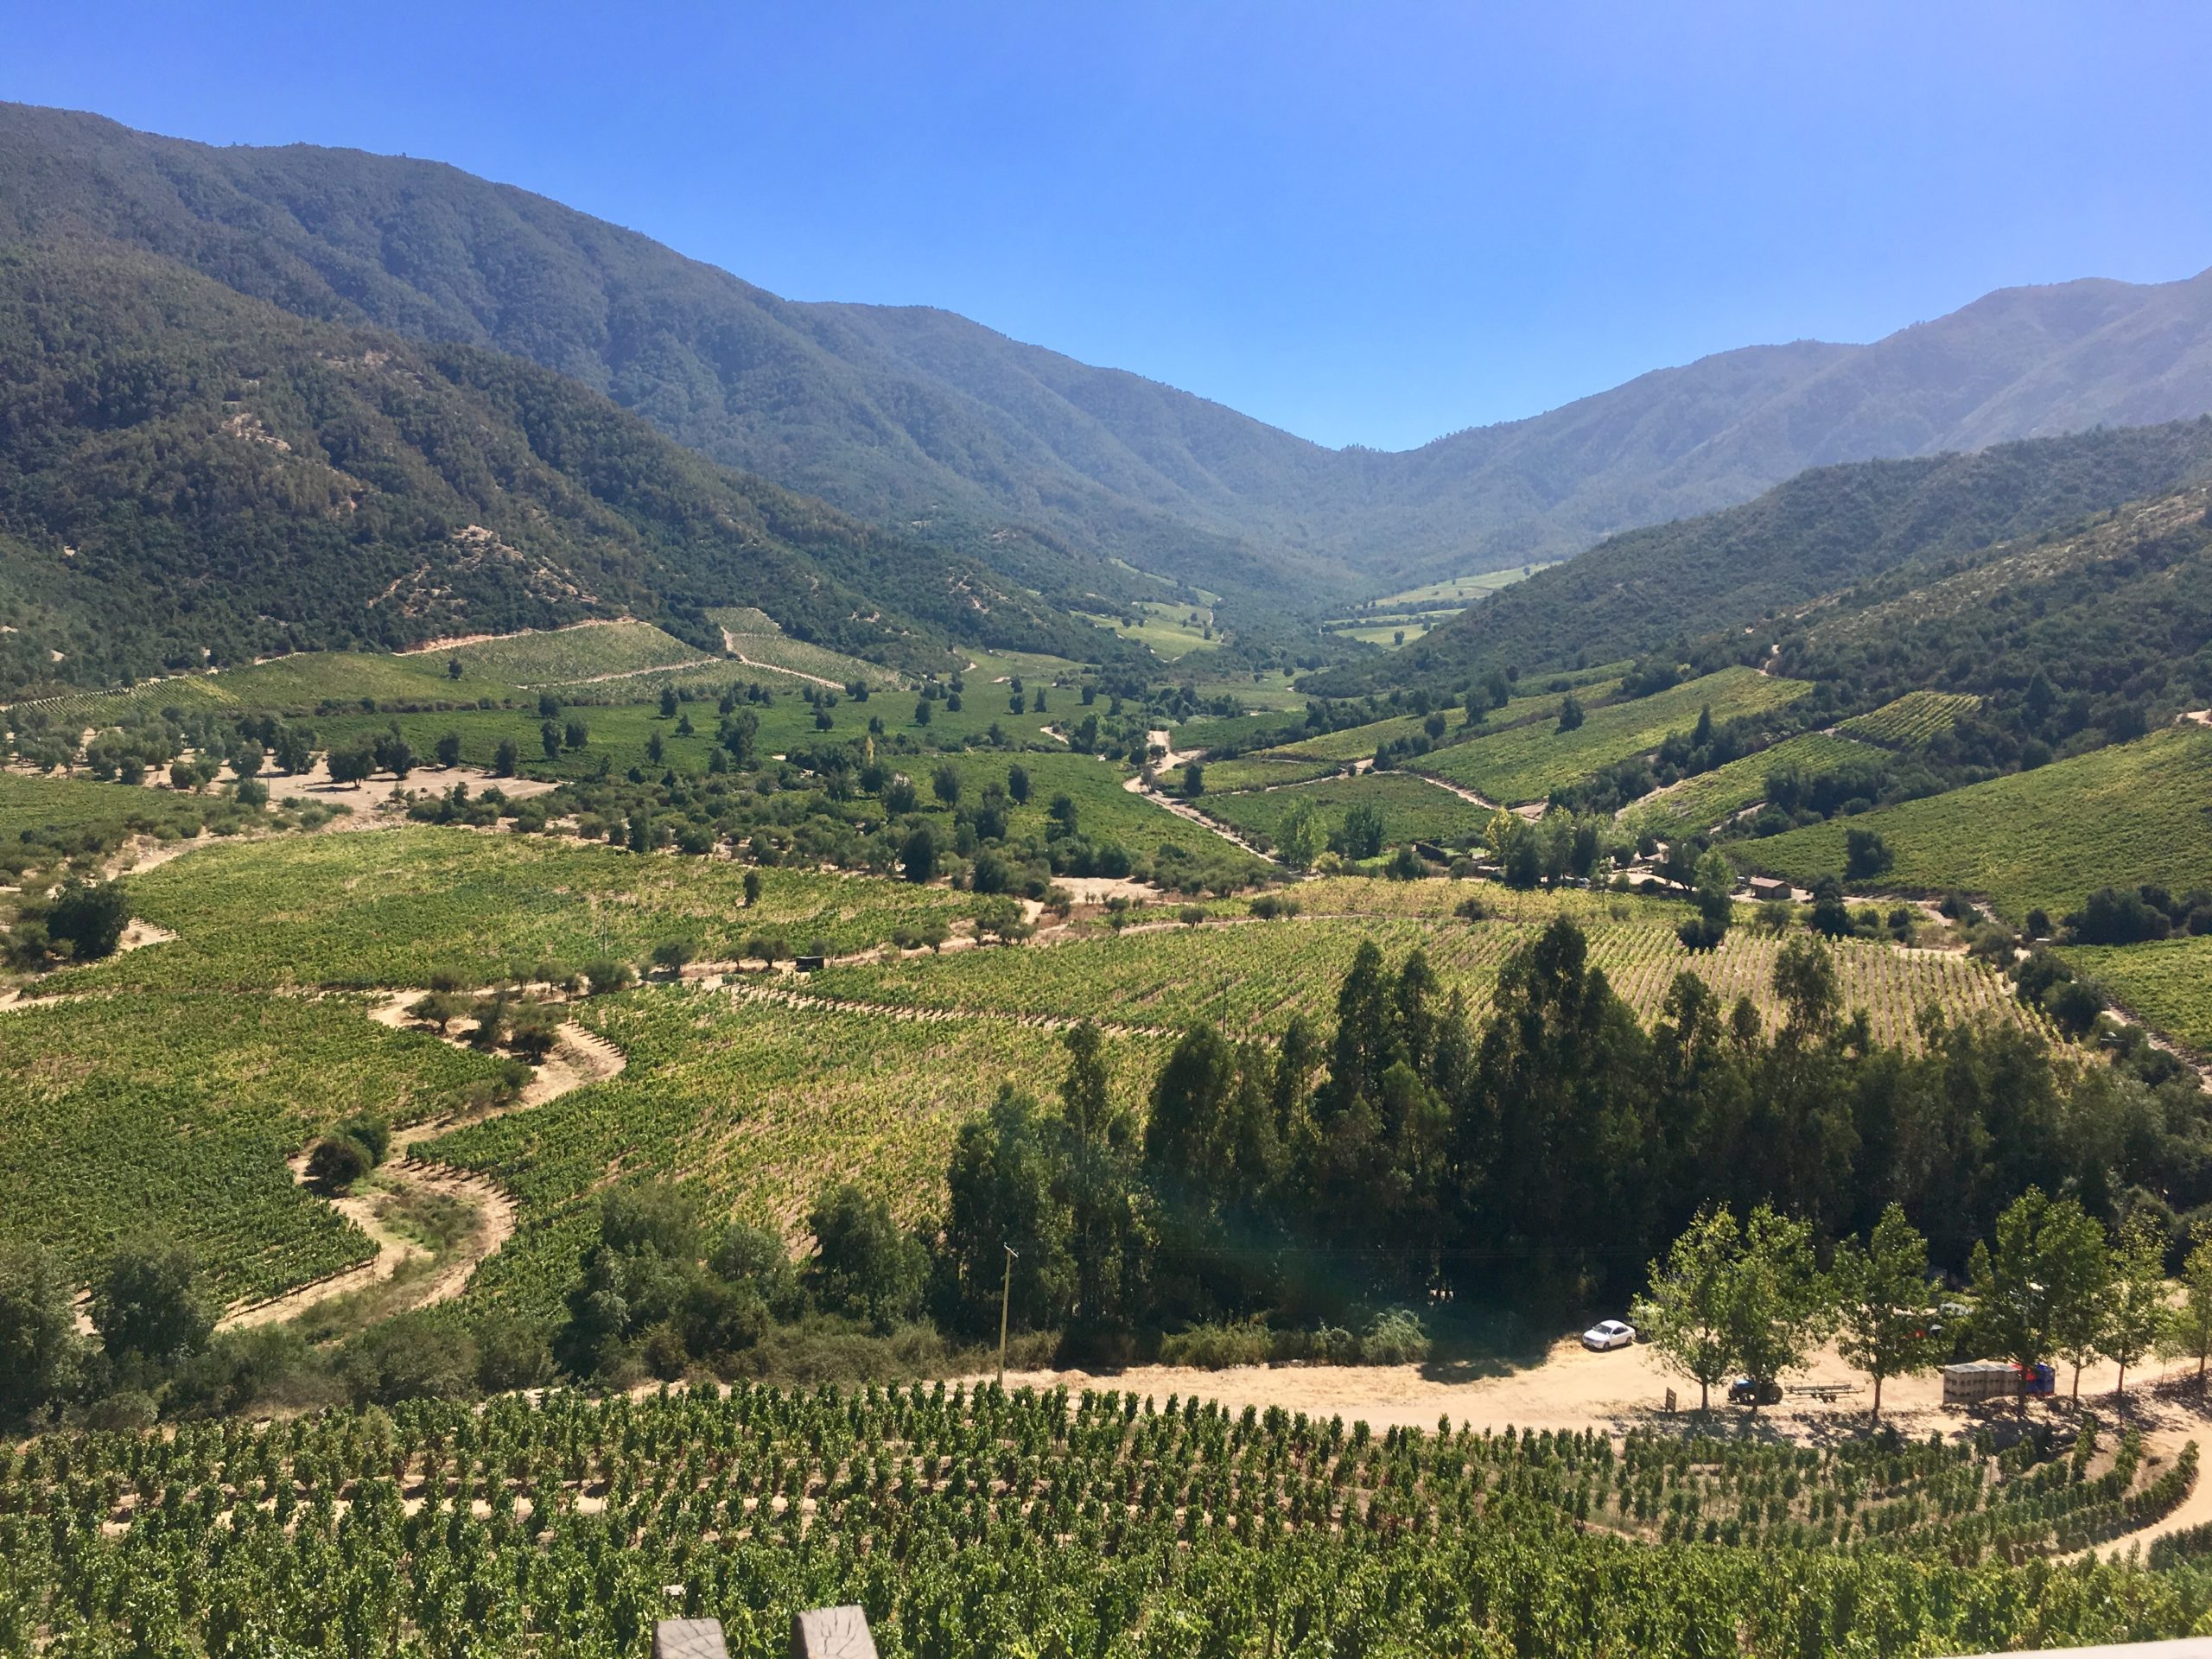 view overlooking a valley with trees and mountains in Colchagua